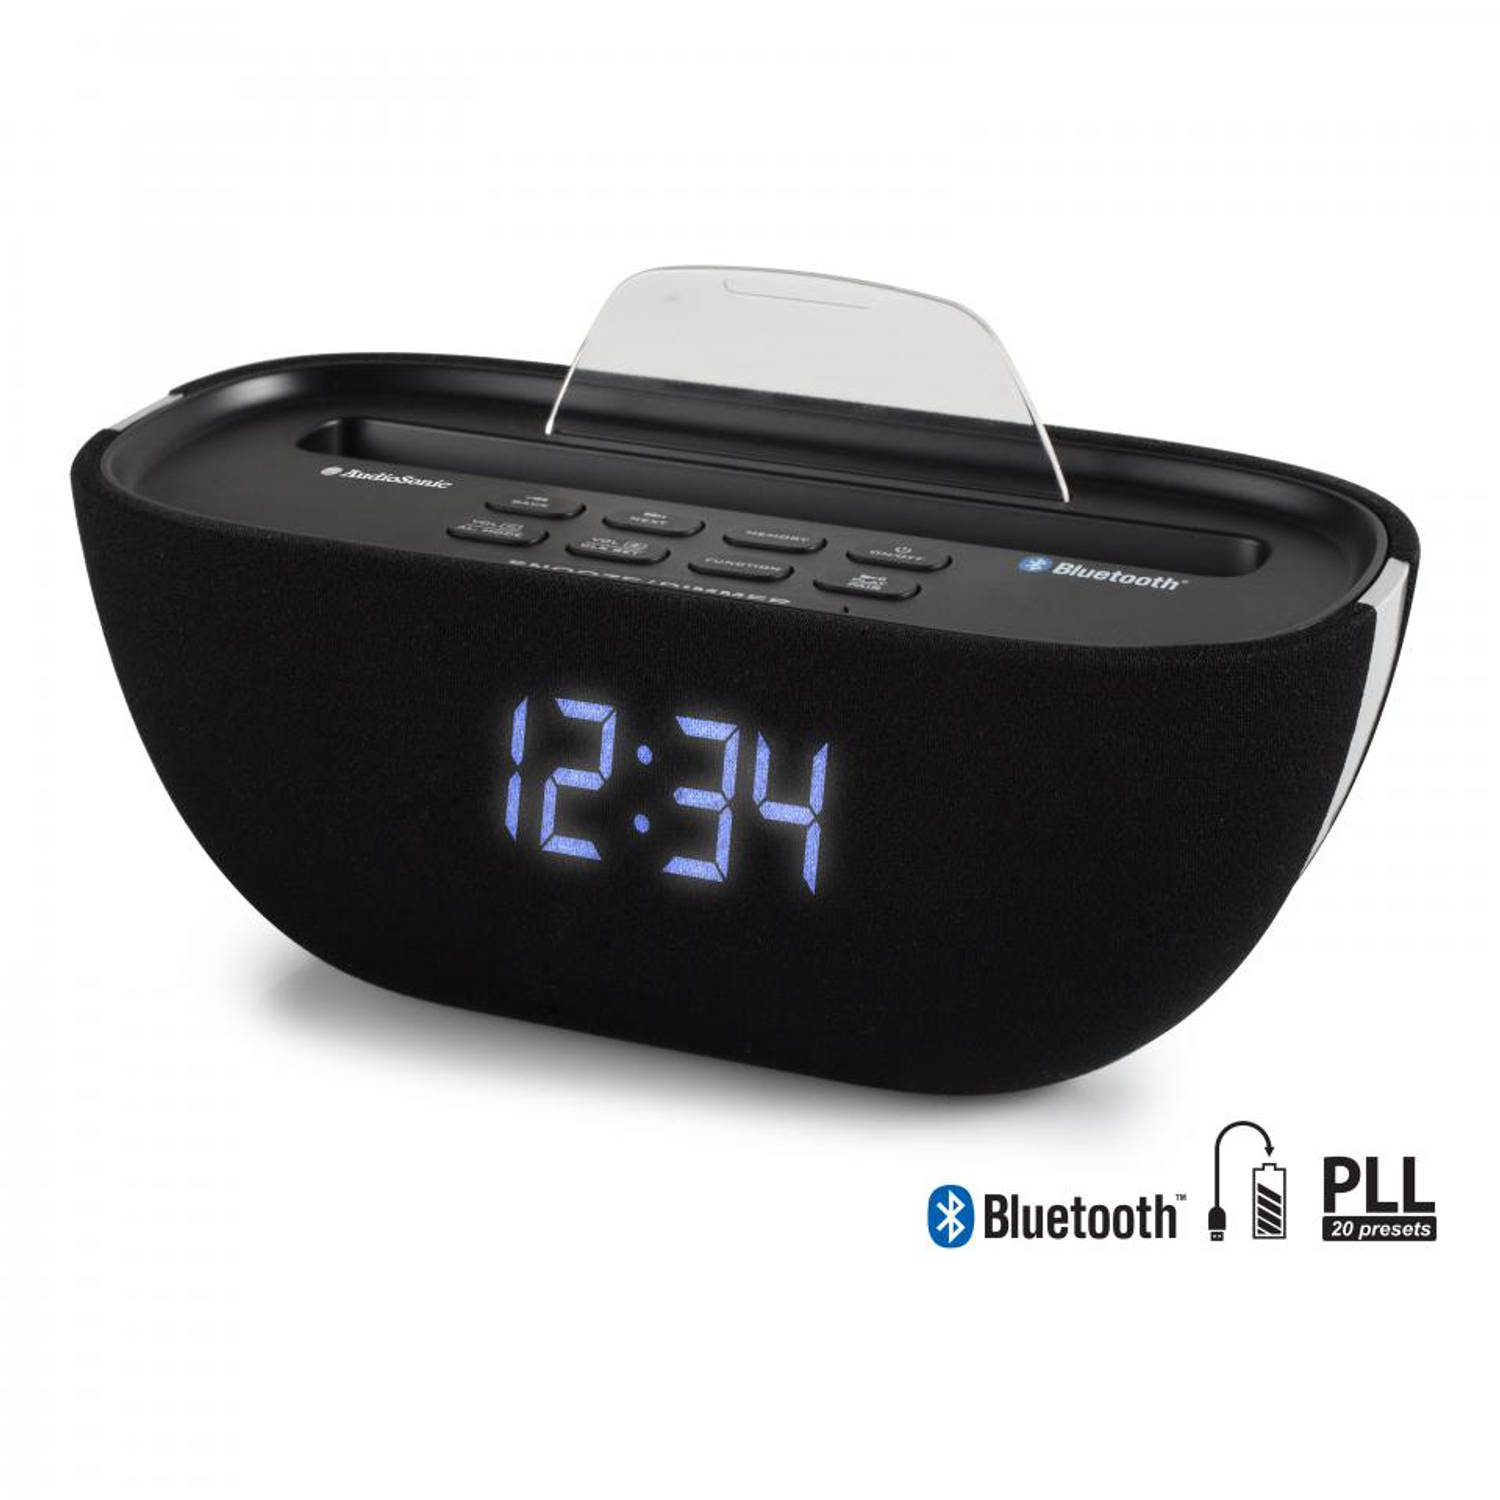 AudioSonic wekkerradio bluetooth CL-1462